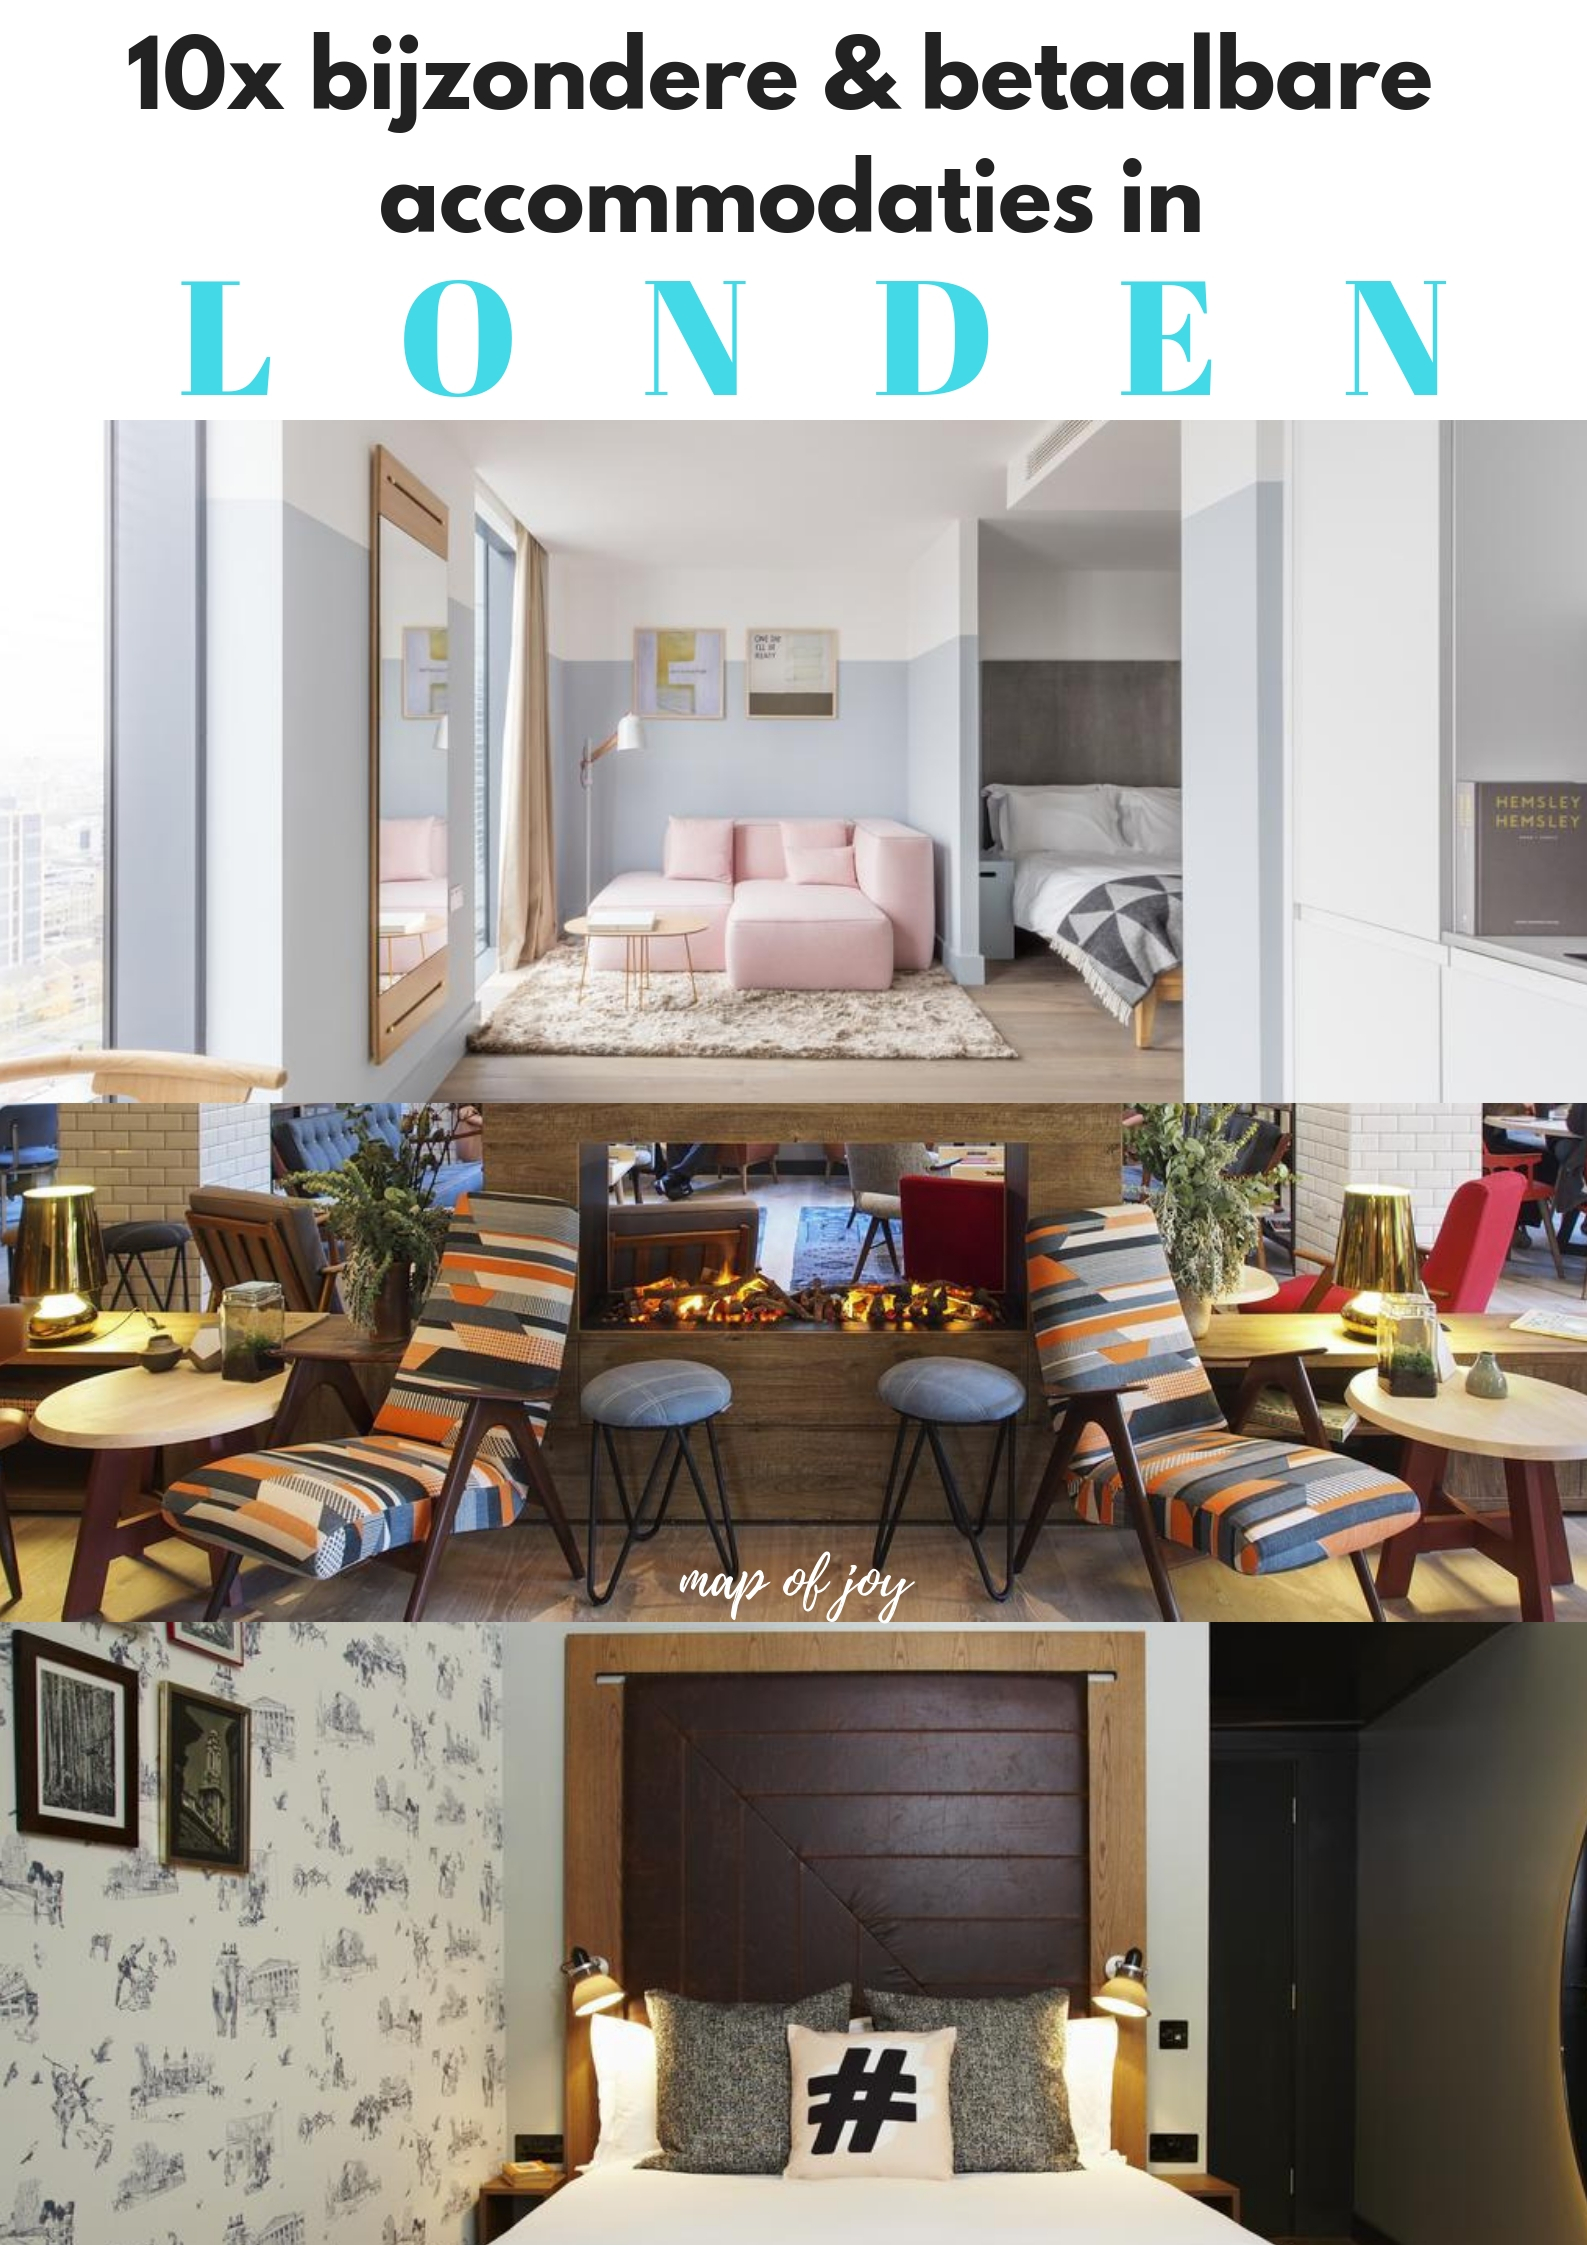 10x bijzondere en betaalbare accommodaties in Londen - Map of Joy